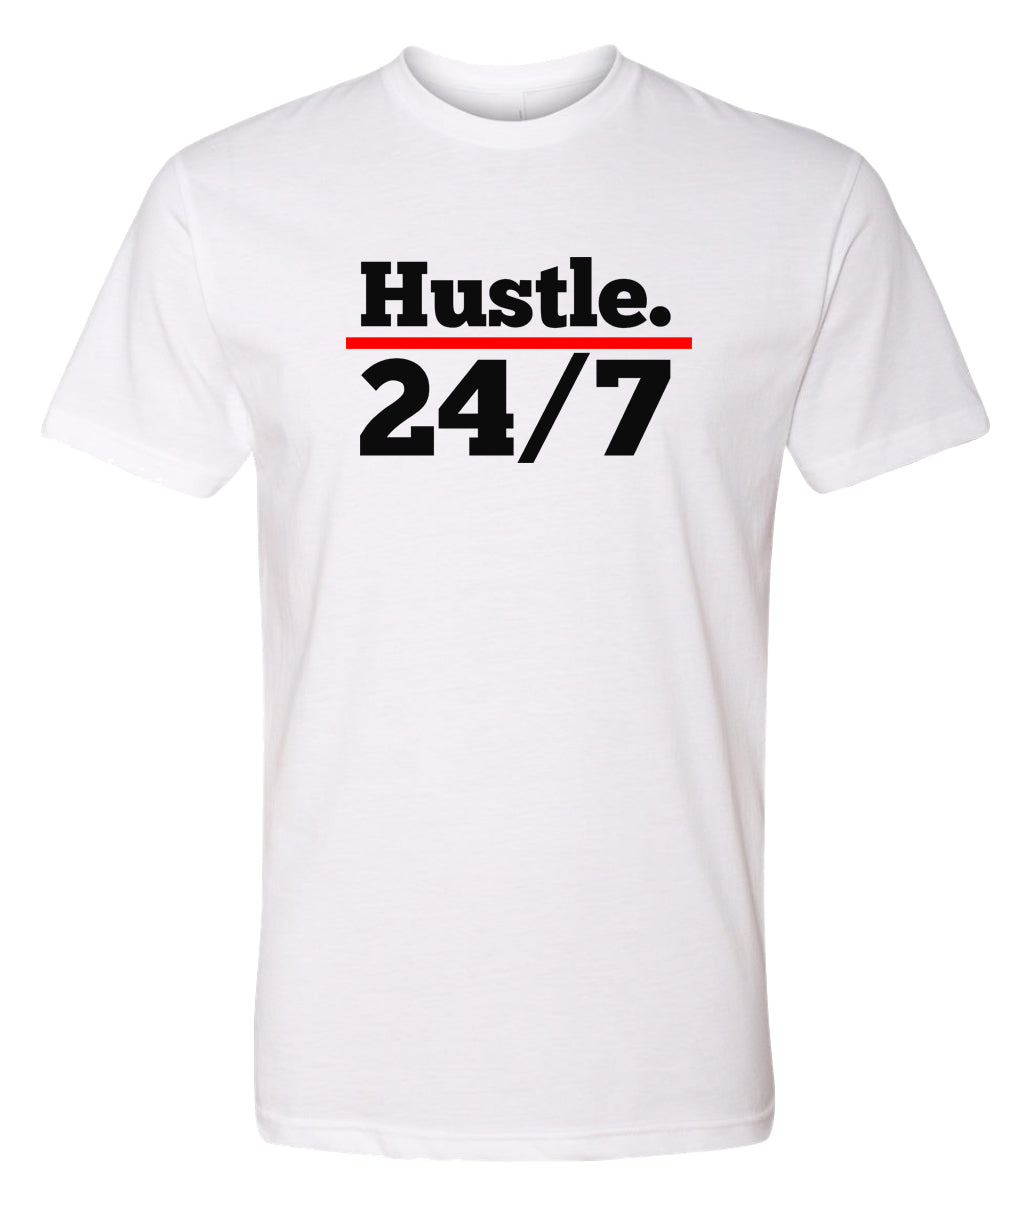 white hustle 24/7 crewneck t shirt